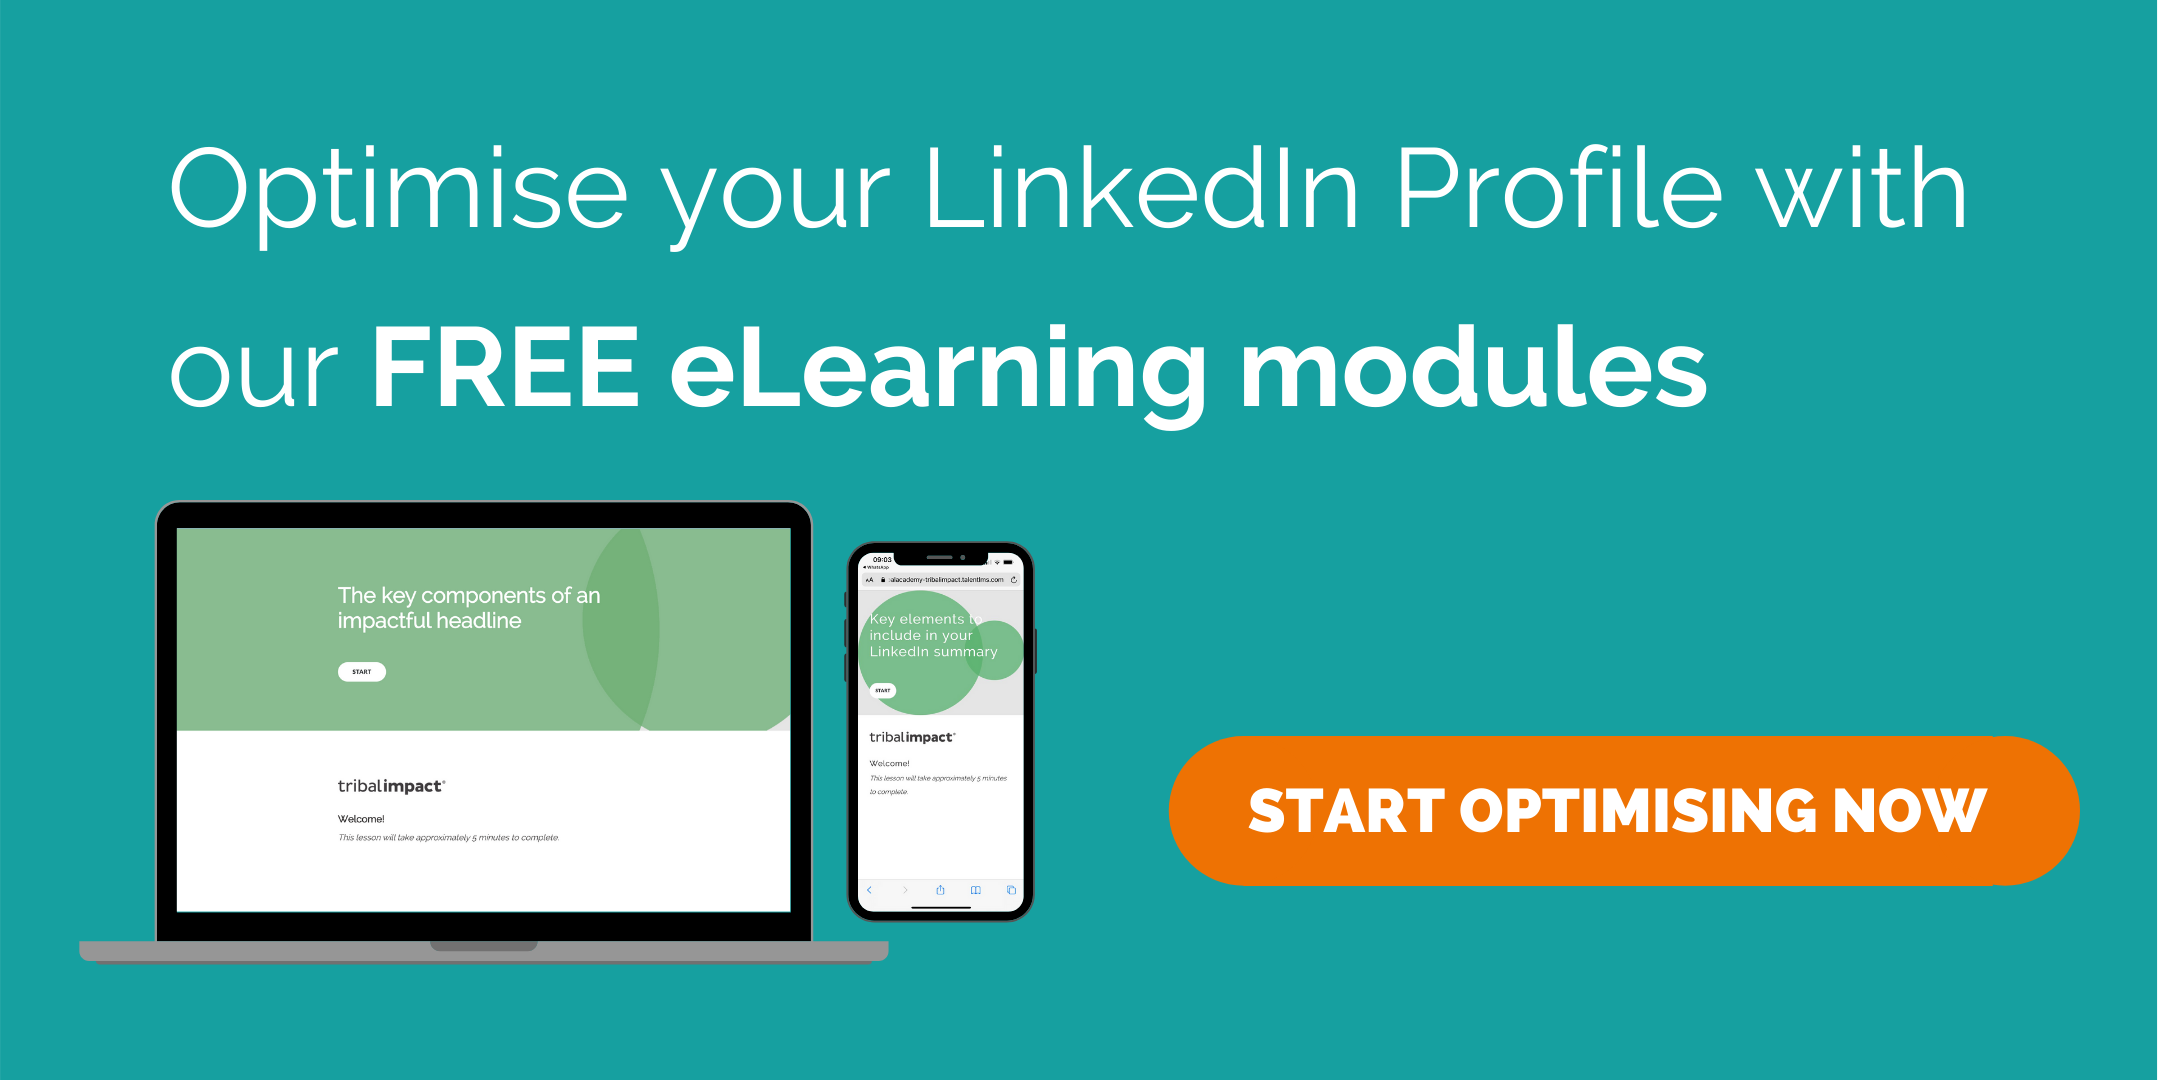 Learn how to optimise your LinkedIn profile with our FREE eLearning modules